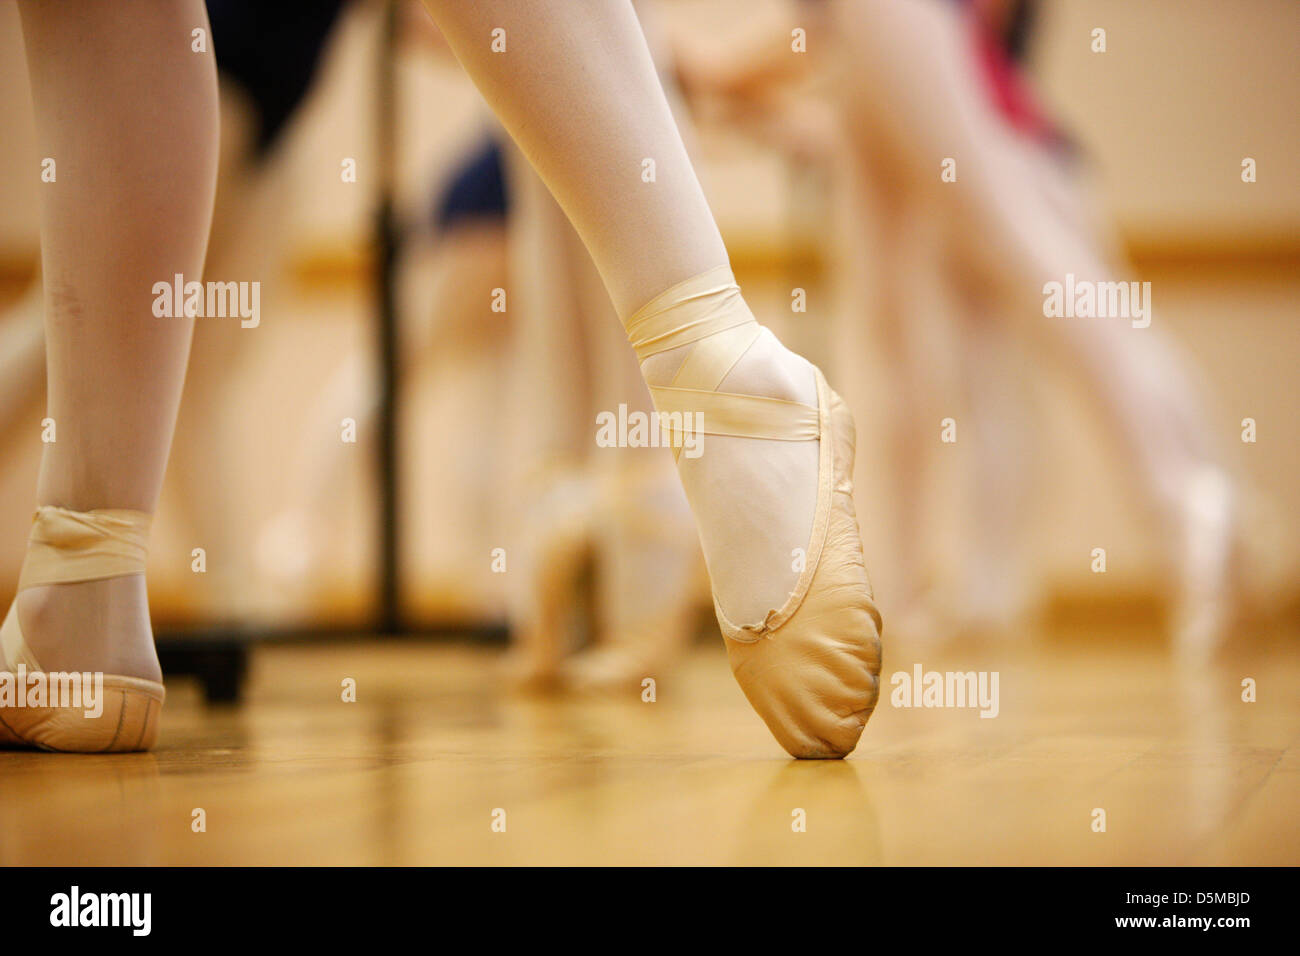 pointed toe in ballet slippers at a ballet school in the uk - Stock Image